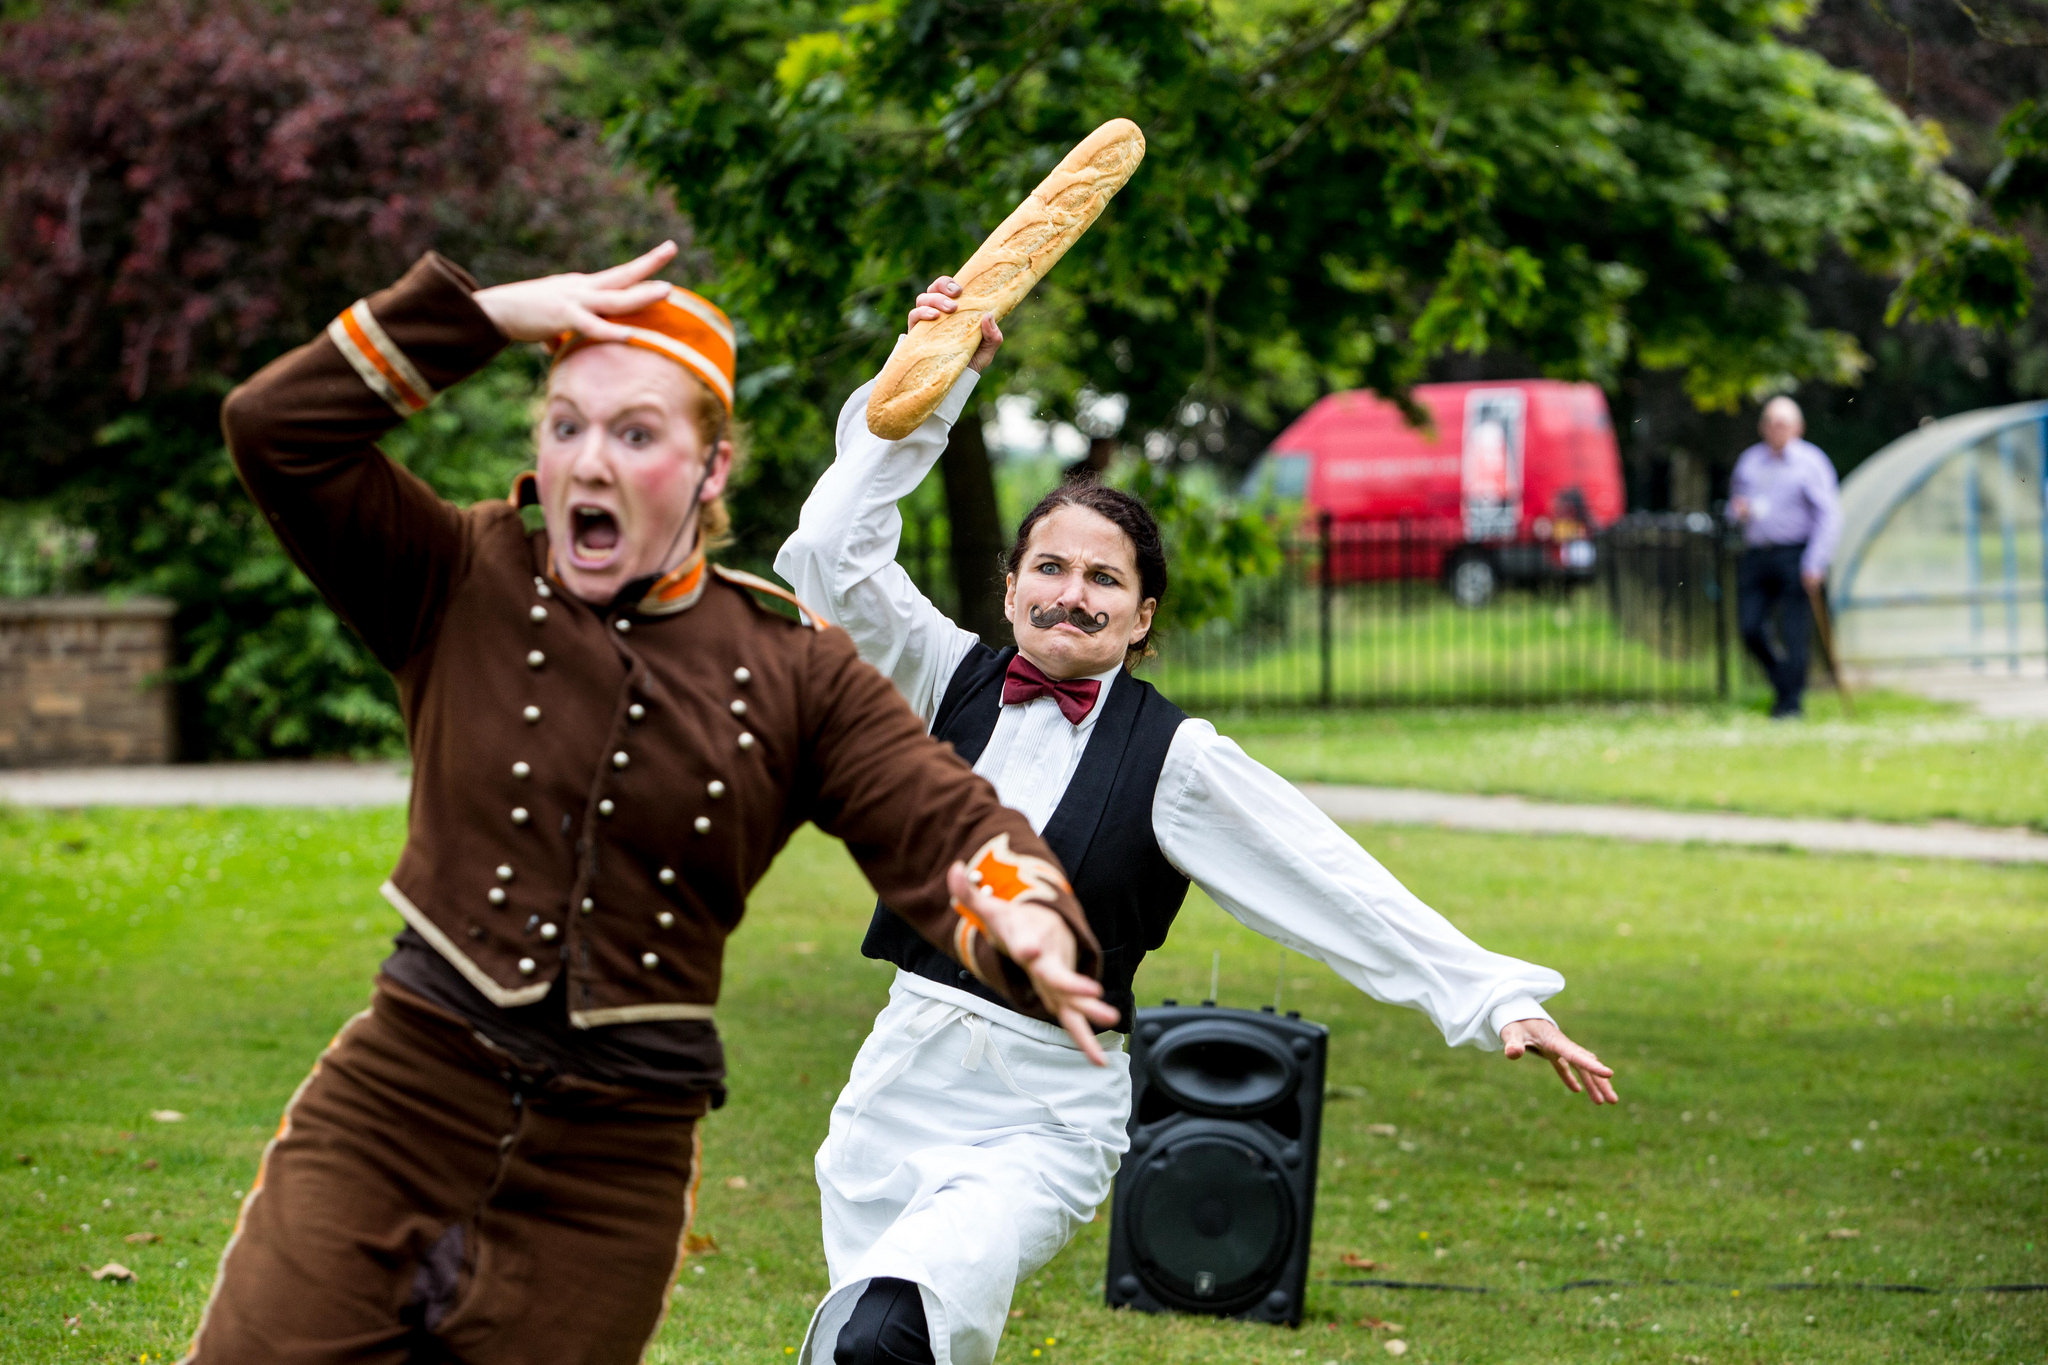 A performer dressed as a bellboy is chased by another dressed as a waiter, wielding a baguette, as they run across a lawn.